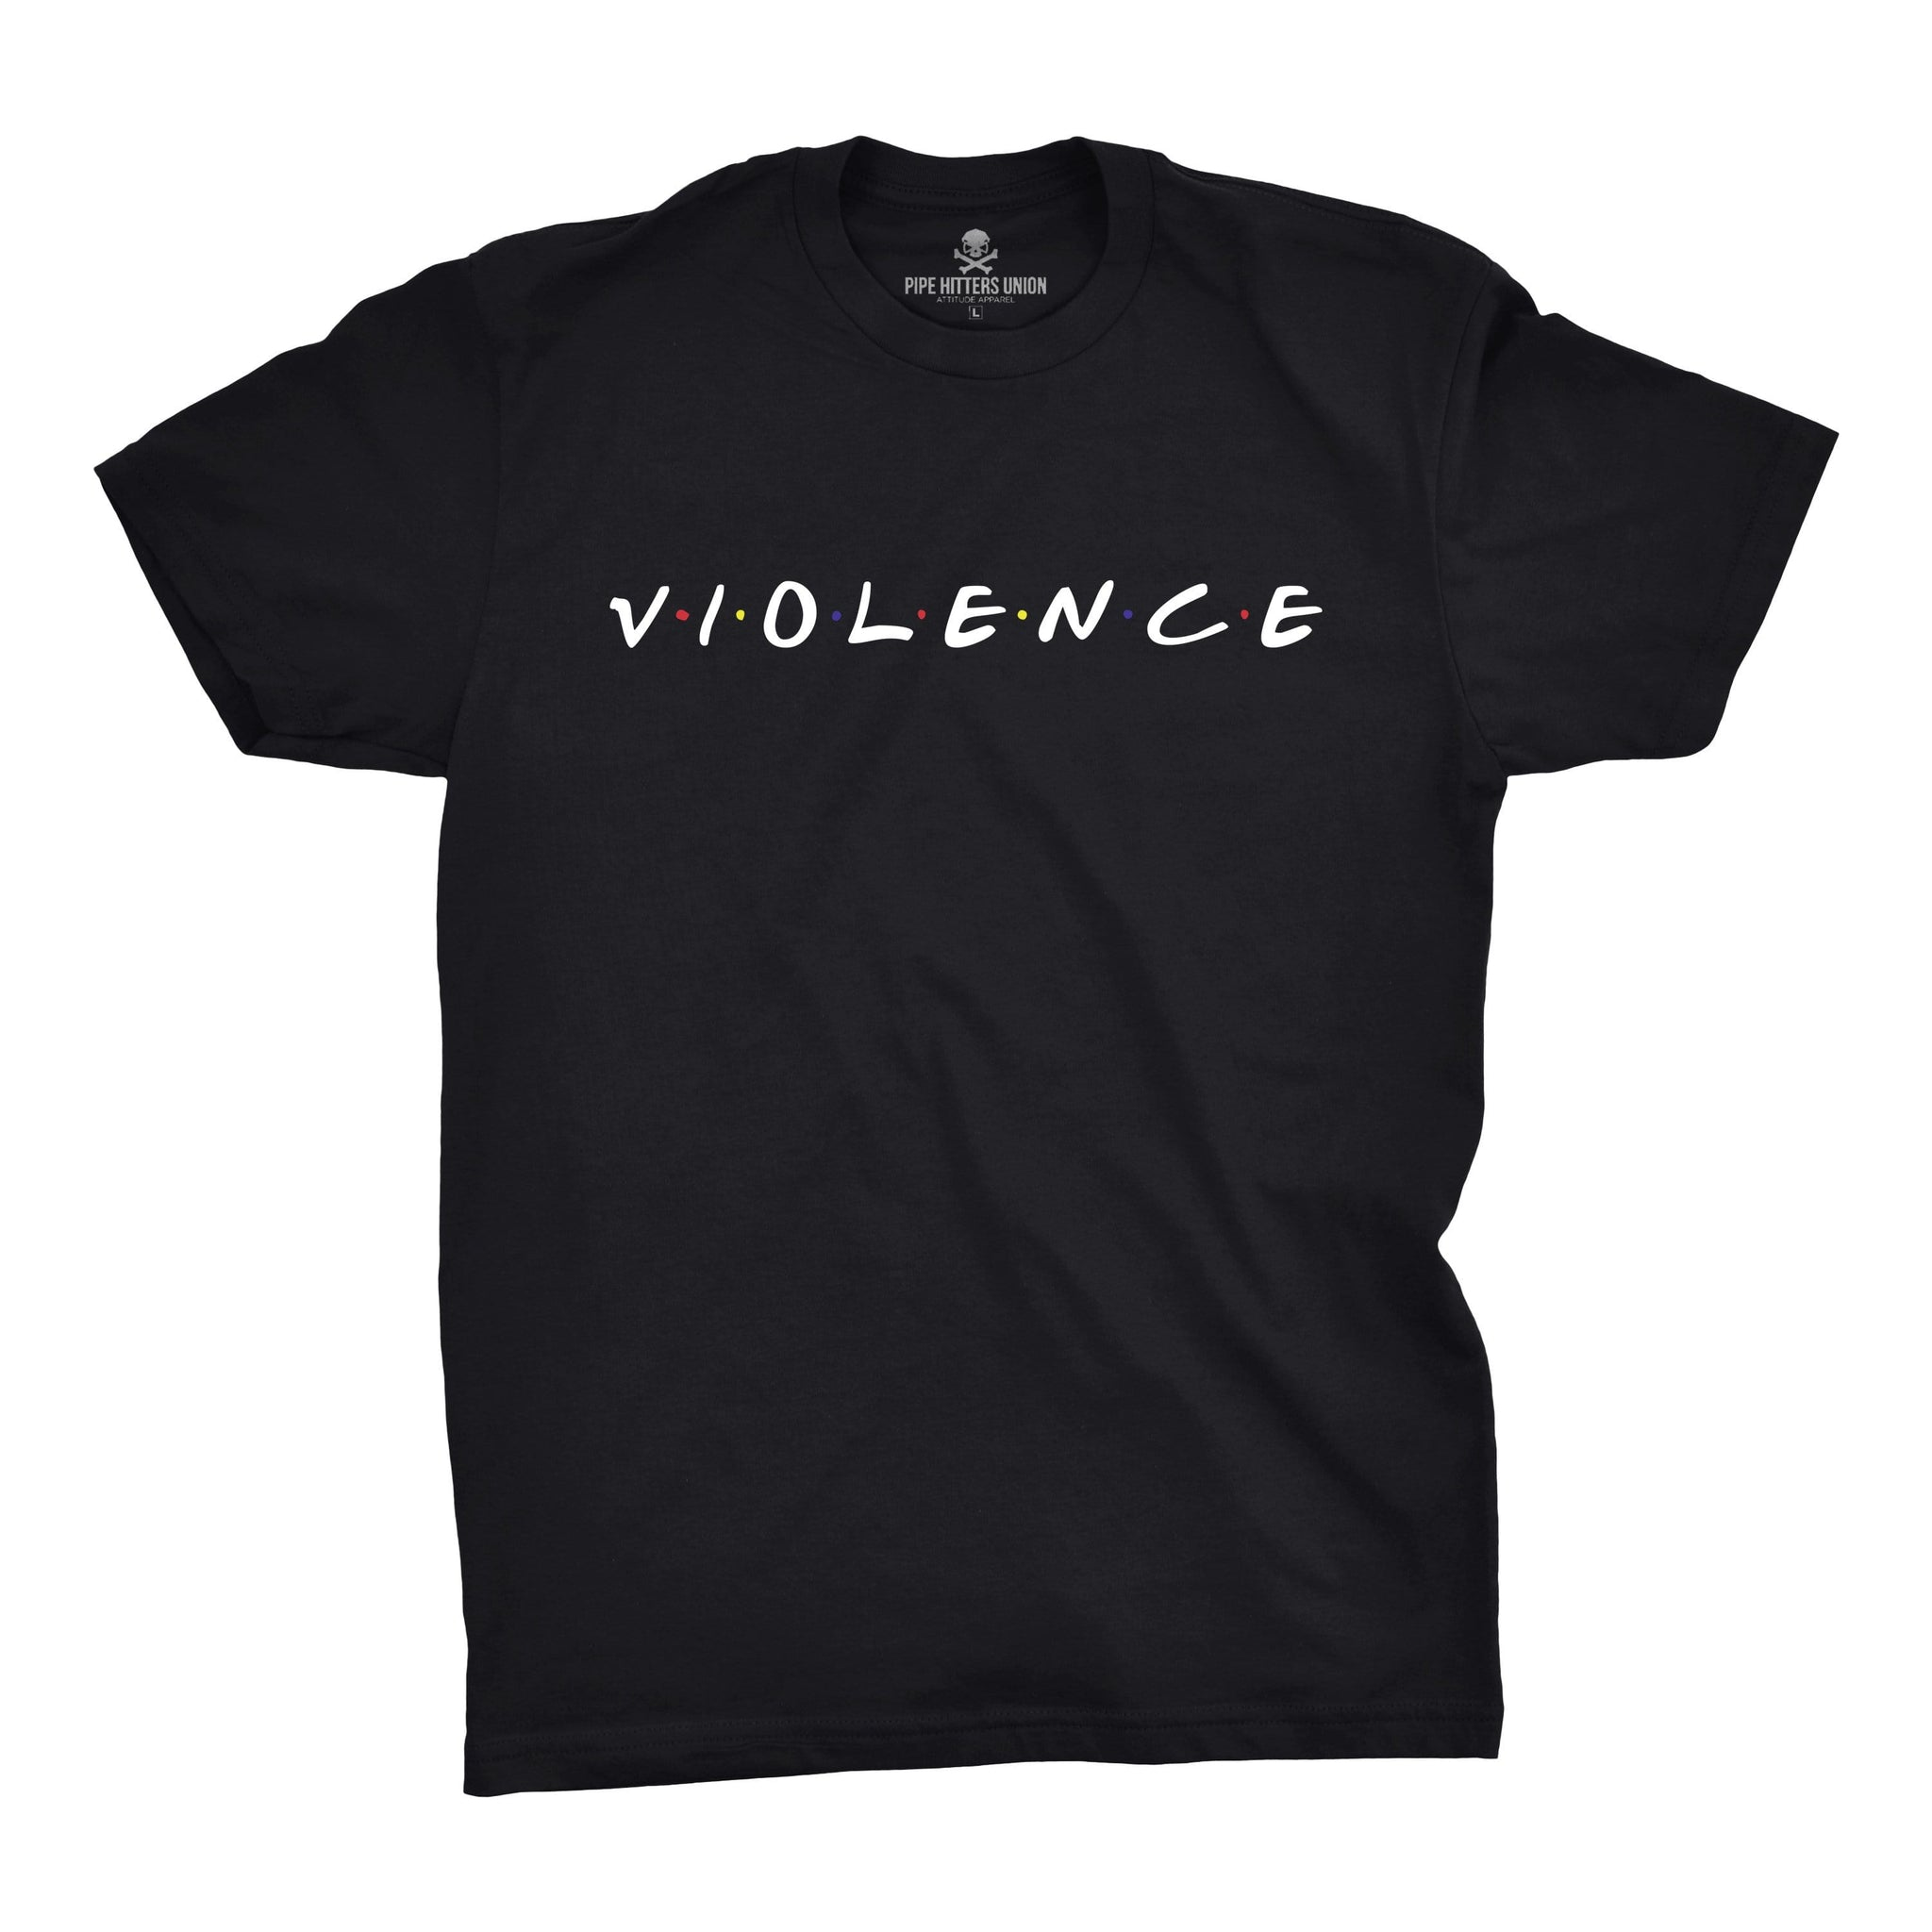 Friendly Violence - Black - T-Shirts - Pipe Hitters Union